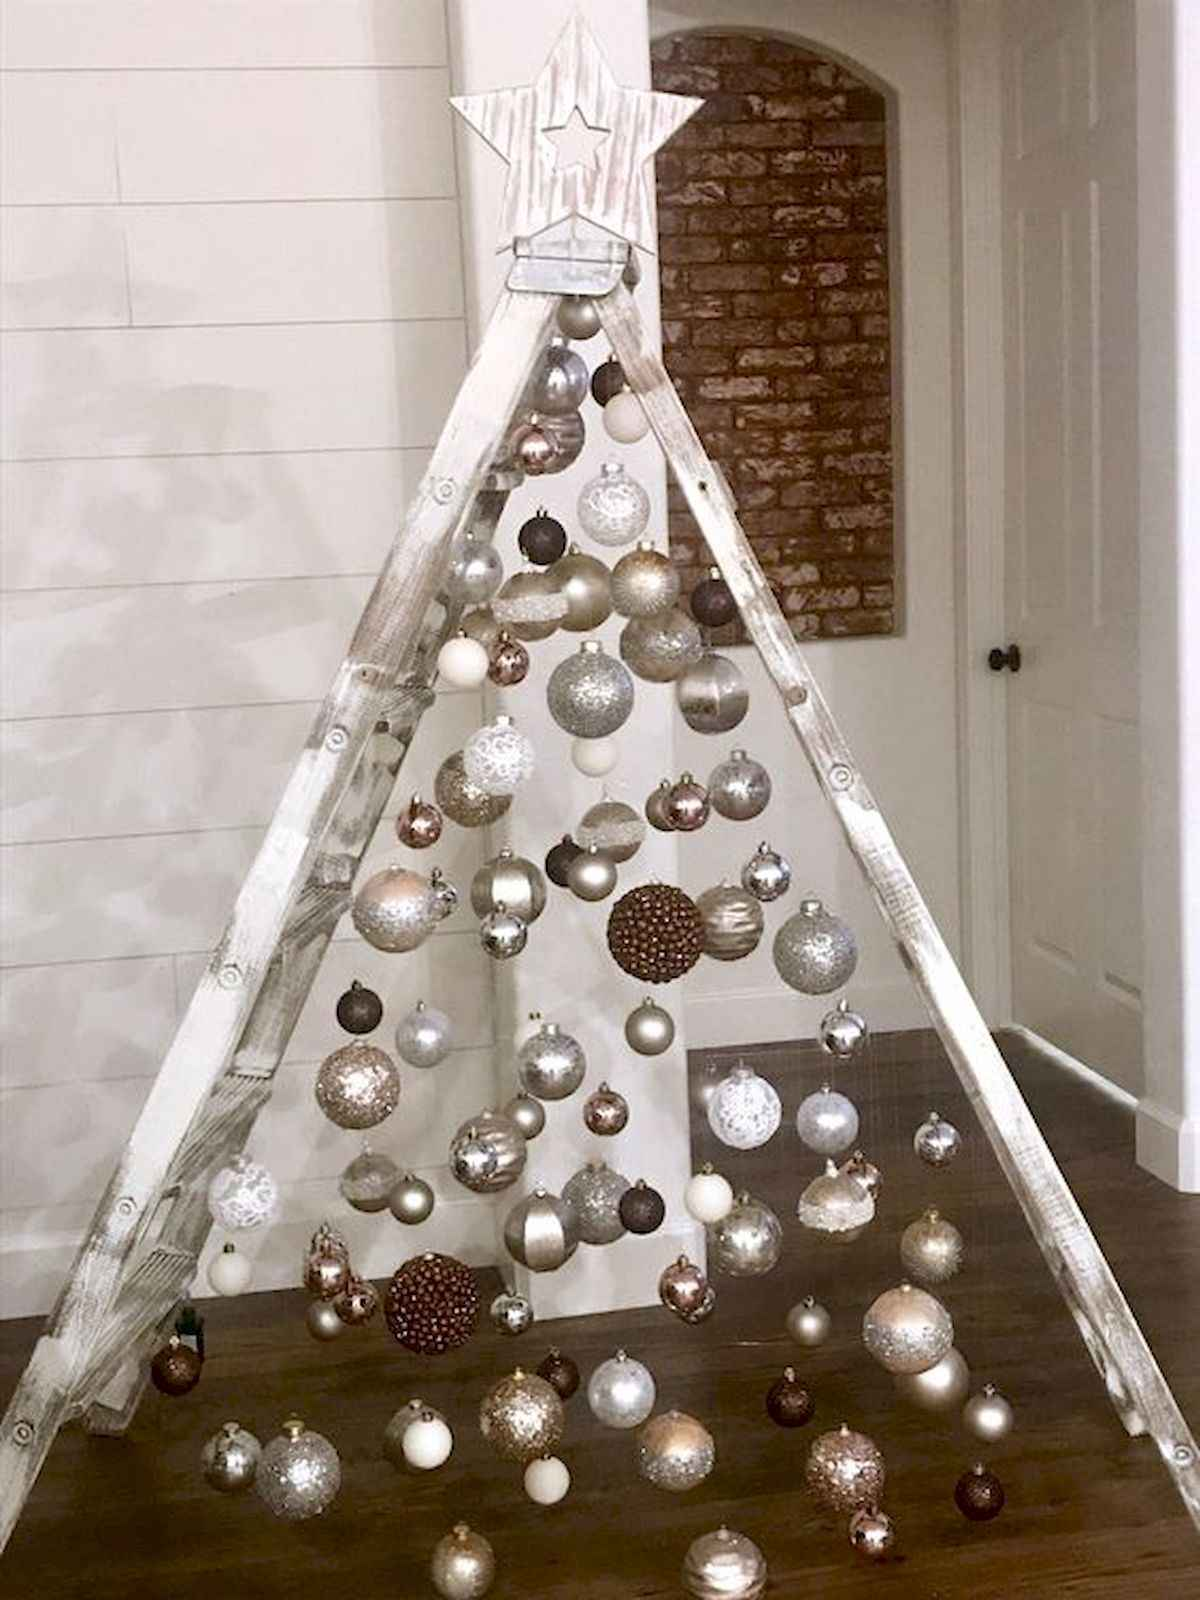 ... 1200 × 1600 in 40 Unique Christmas Tree Ideas Decorations